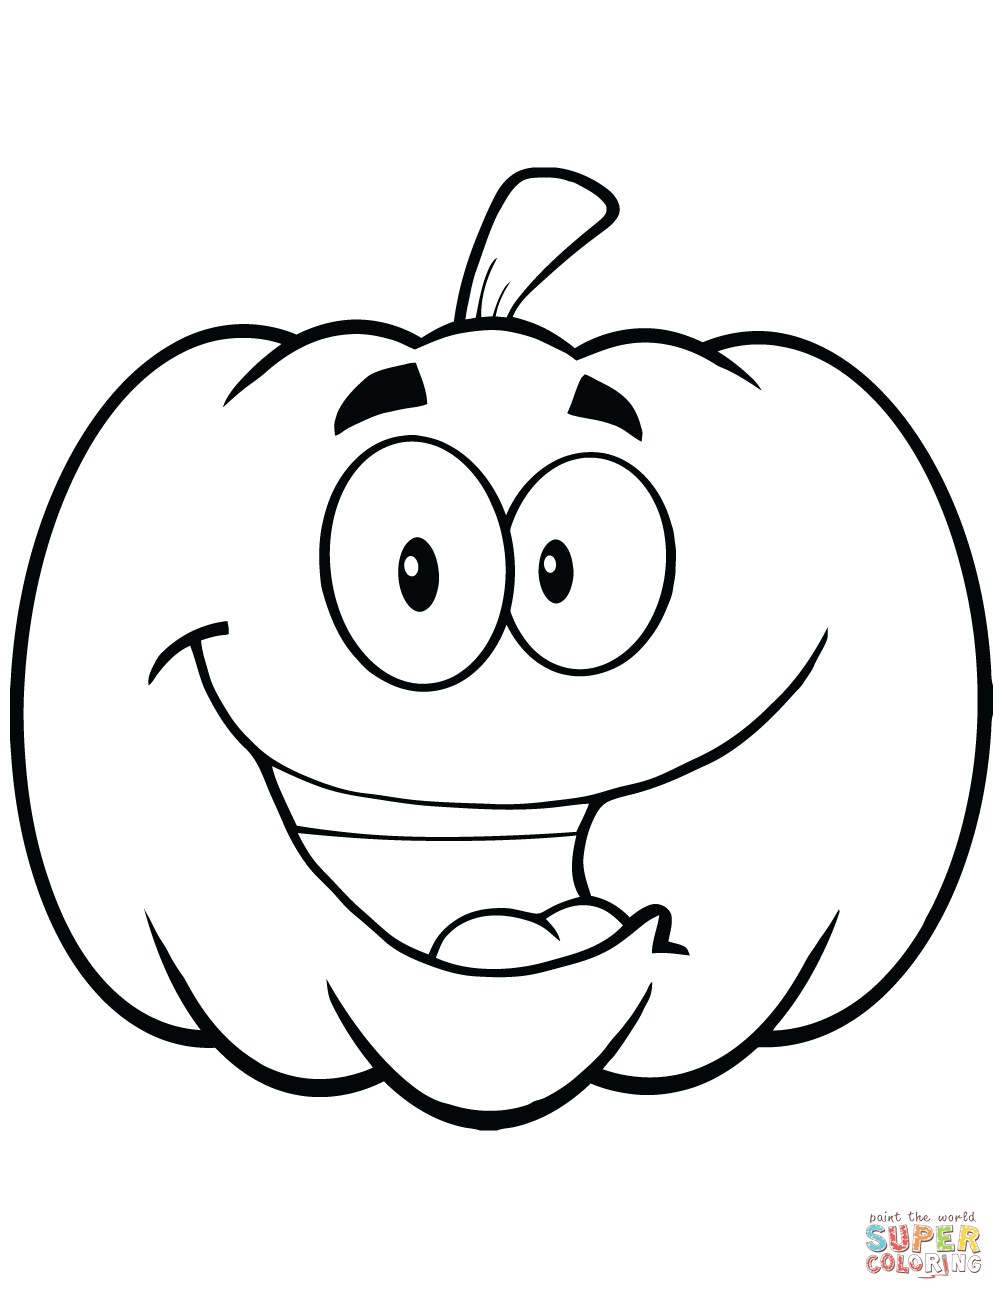 halloween pictures of pumpkins to color cartoon halloween pumpkin coloring page free printable pumpkins to pictures of halloween color